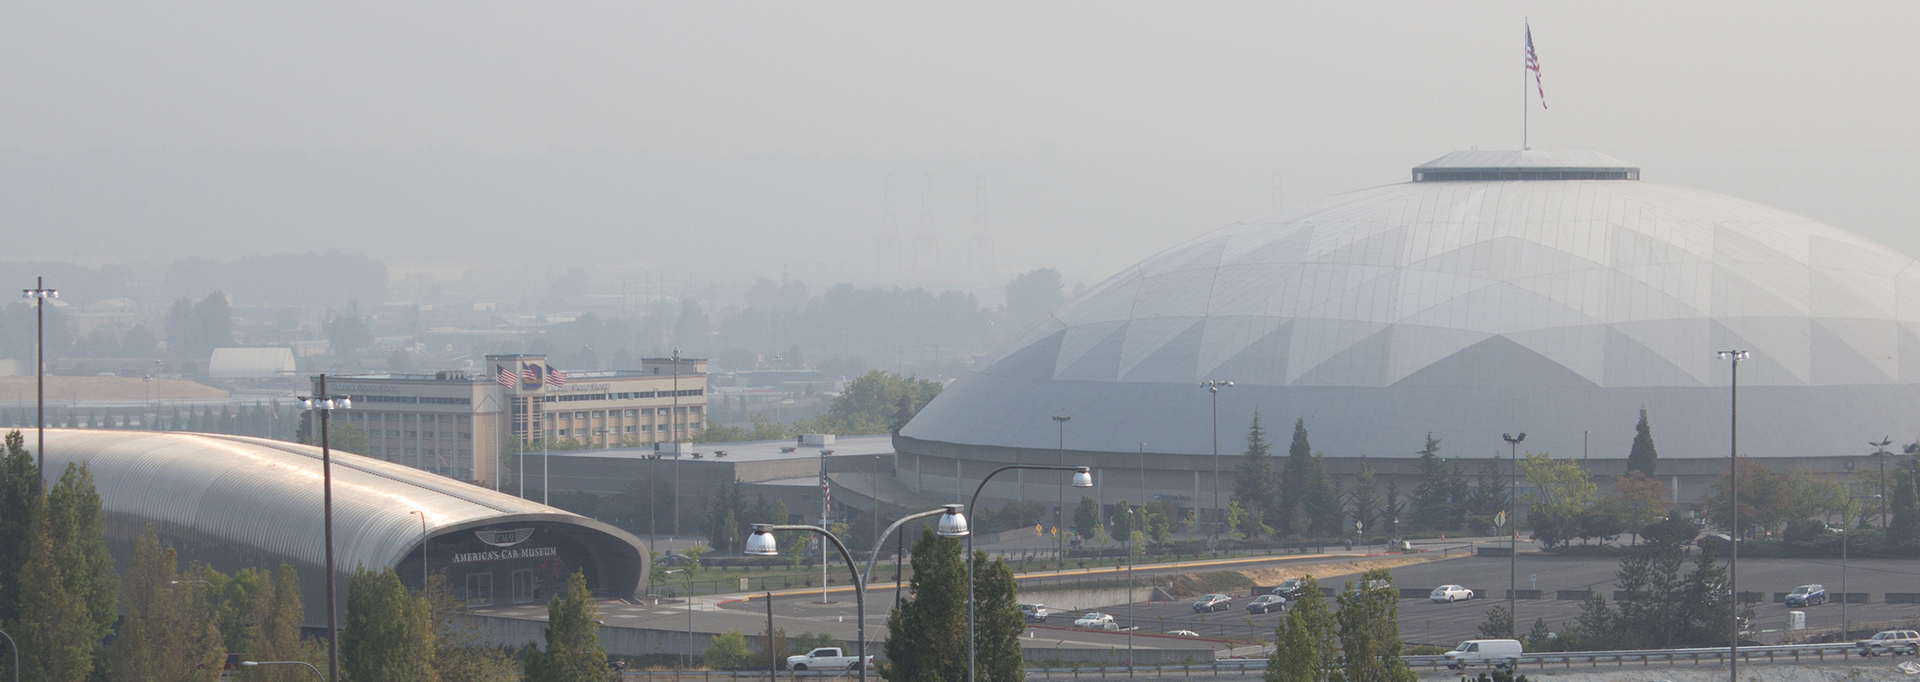 View of Tacoma Dome and skyline with wildfire smoke in the air.